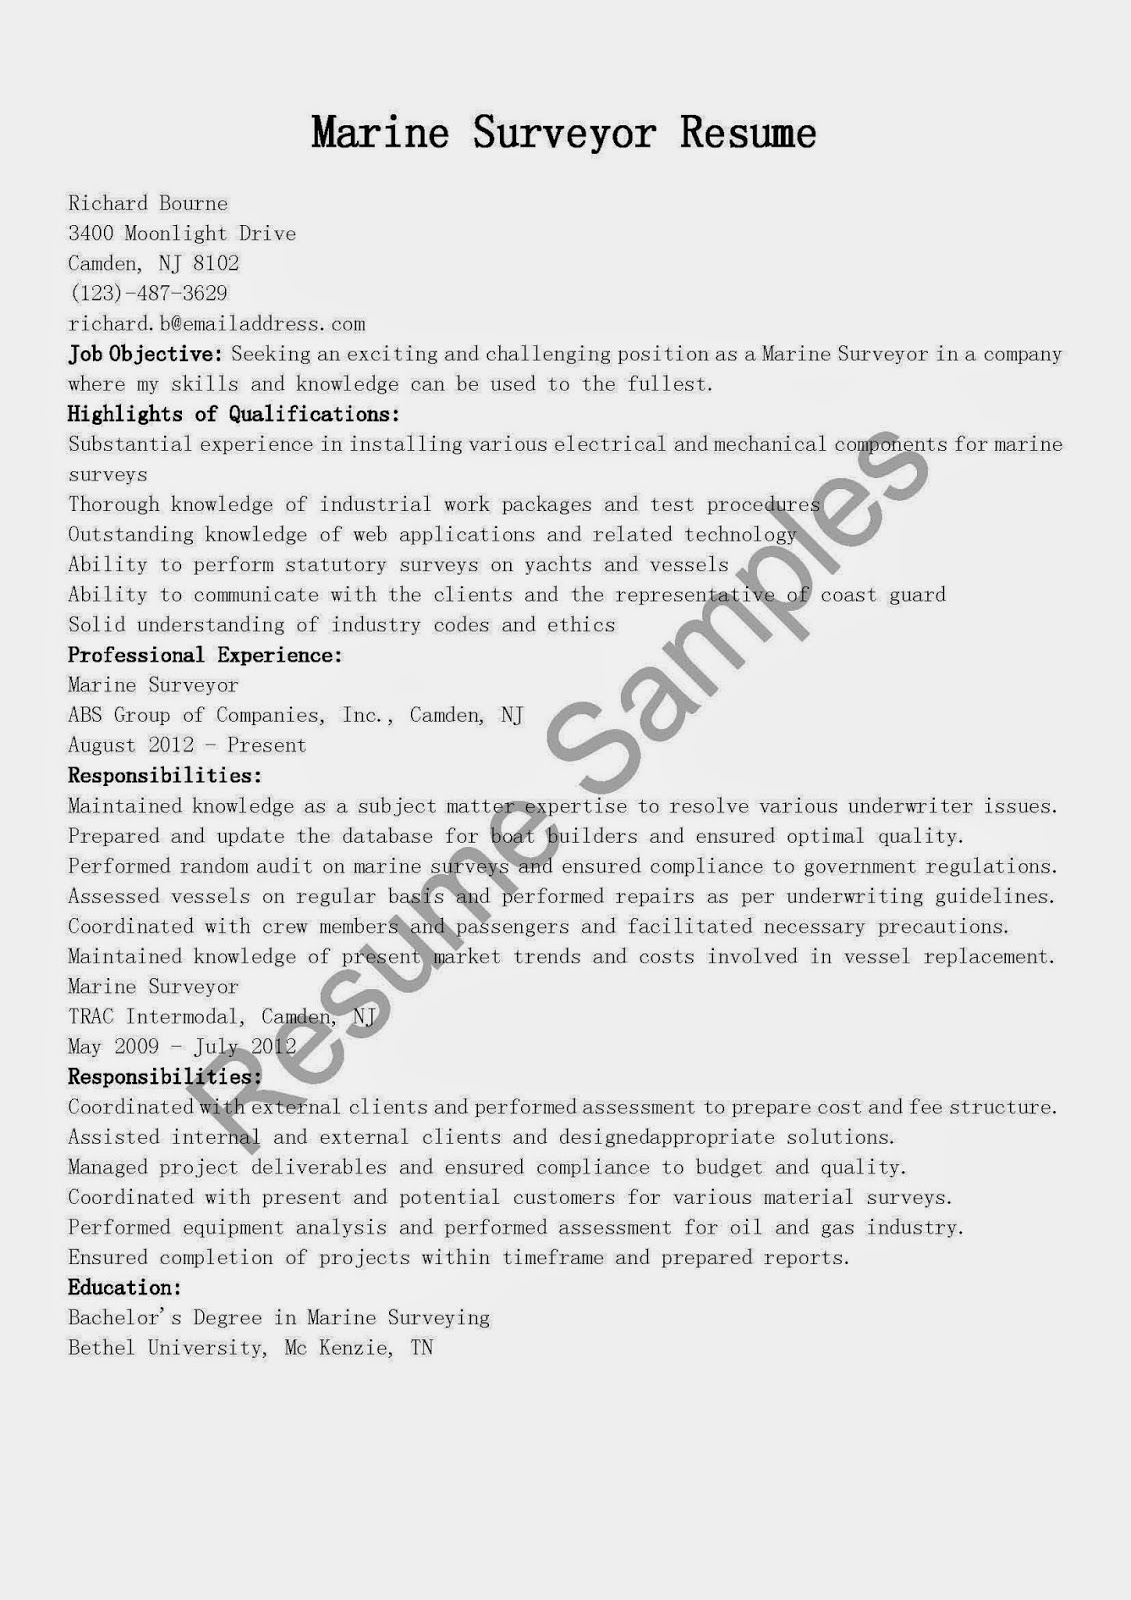 resume samples  marine surveyor resume sample